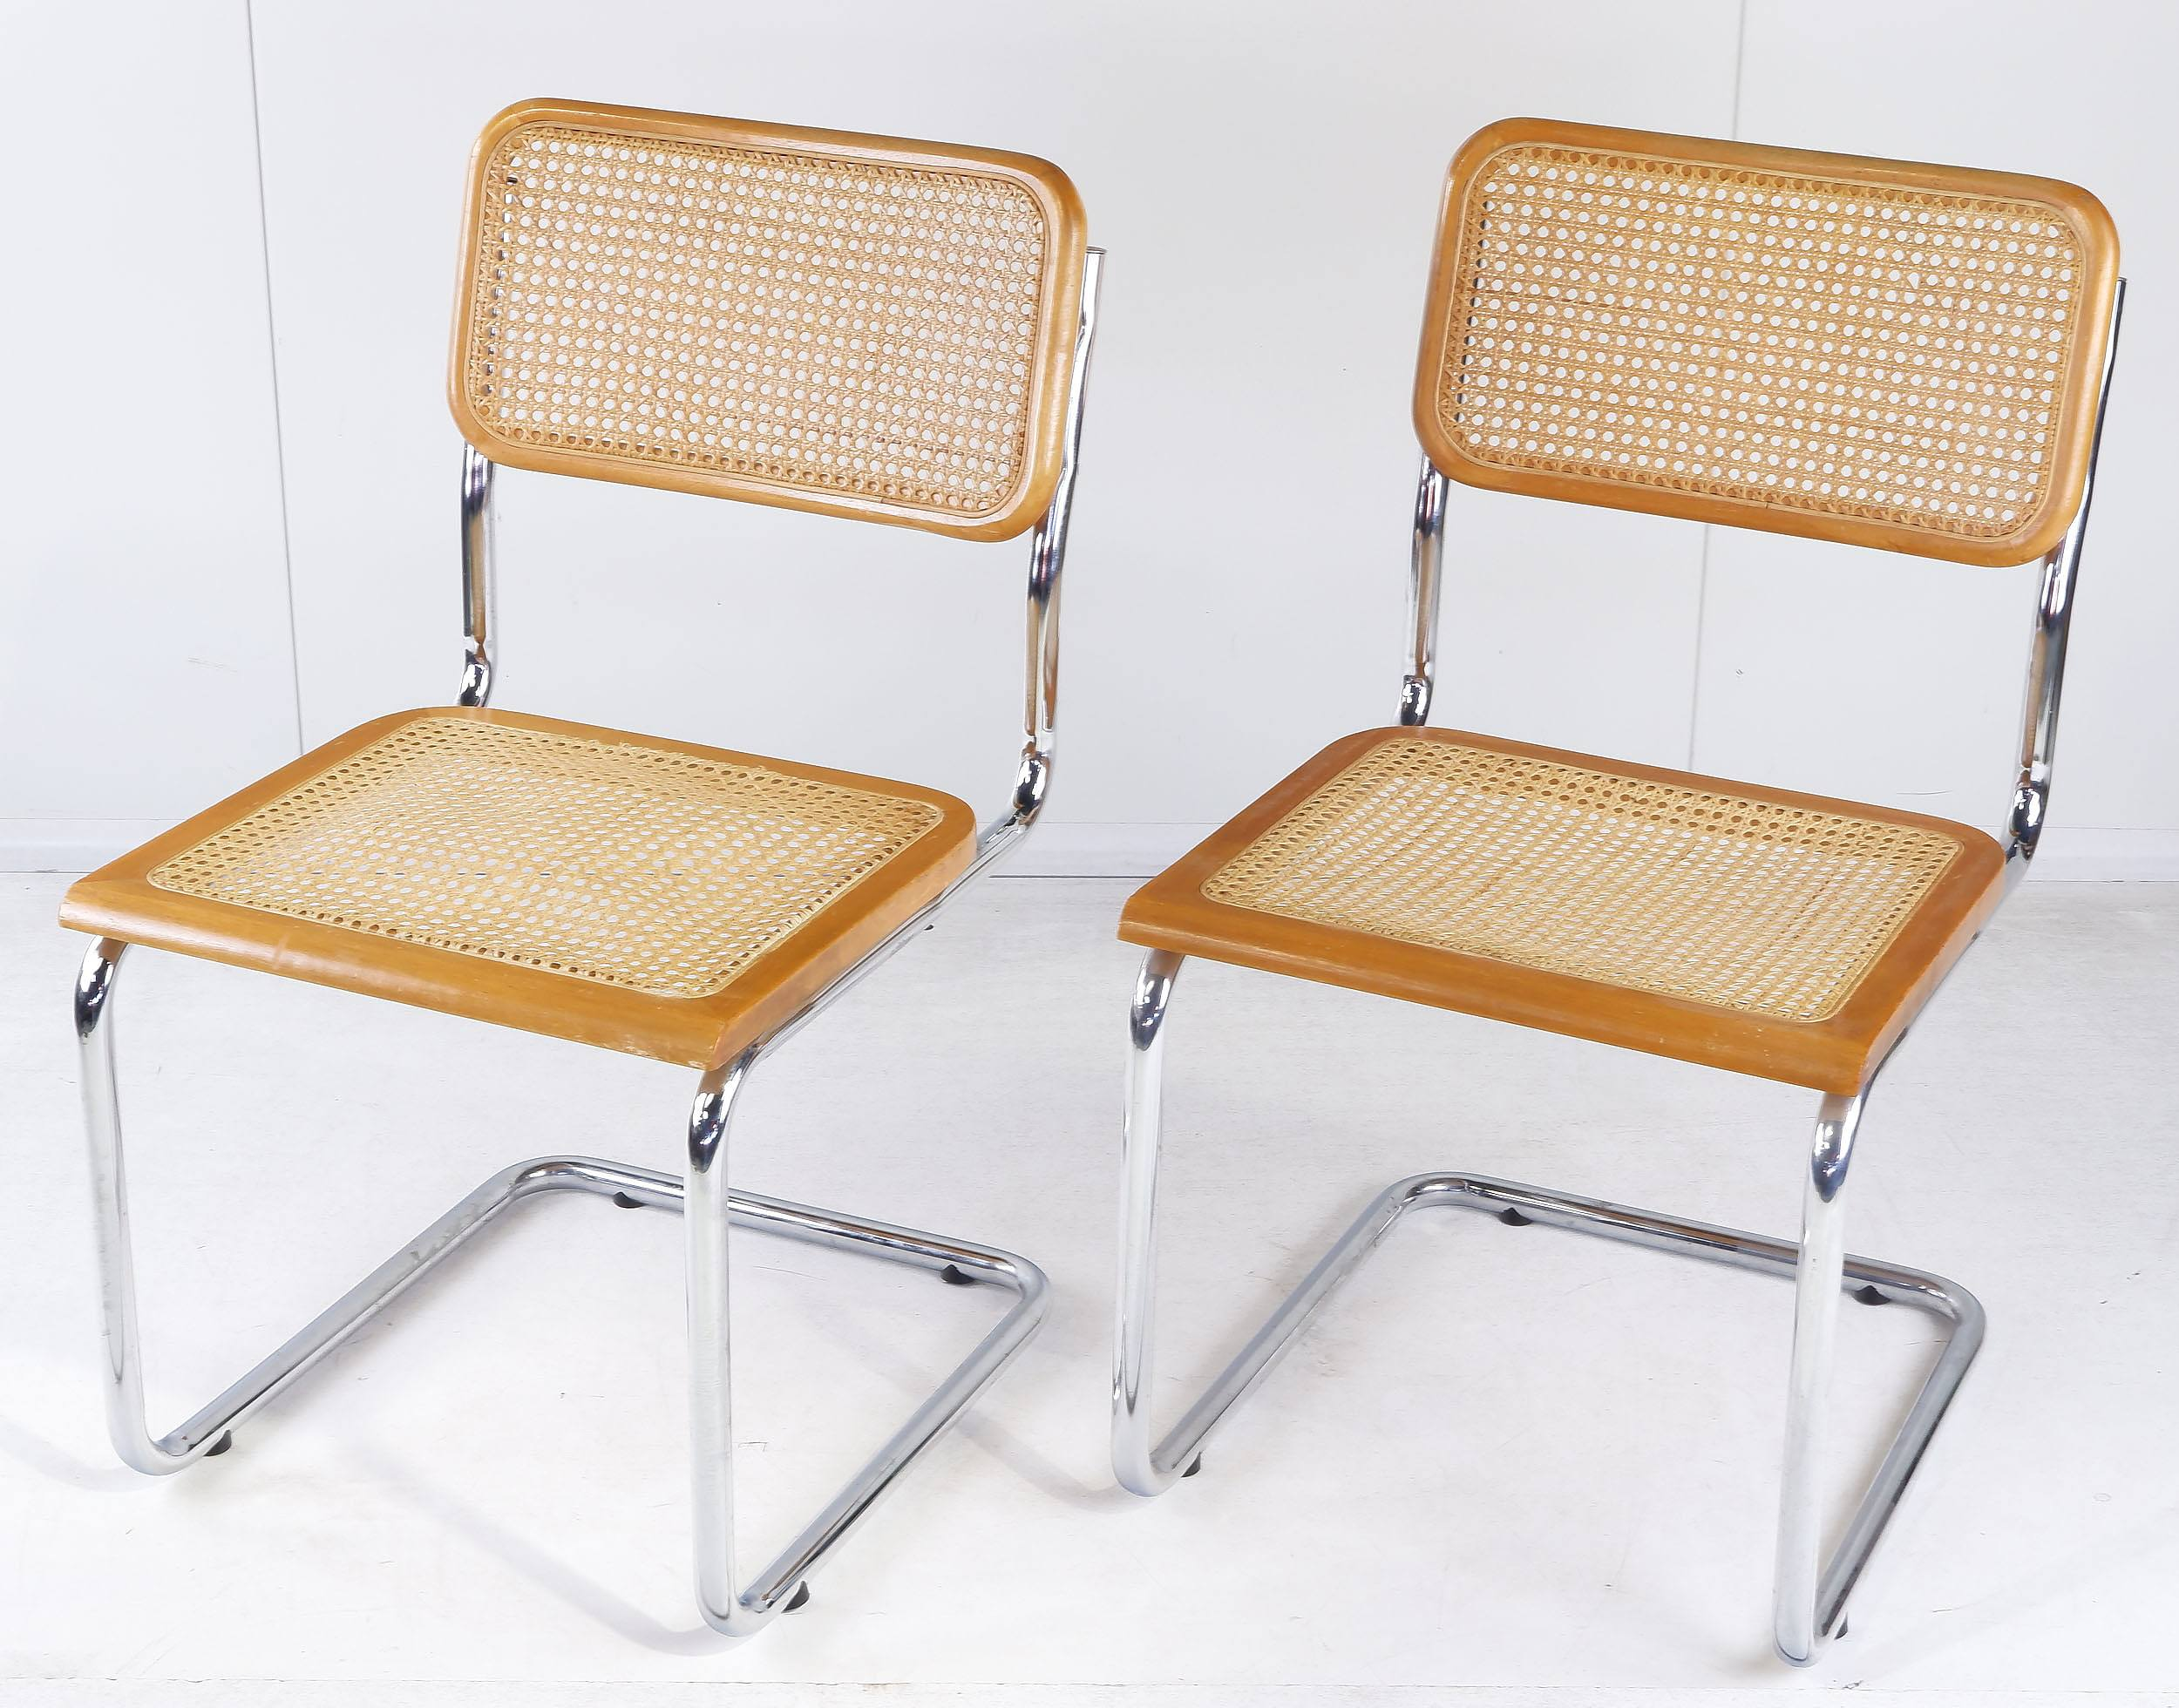 'Pair of Marcel Breuer Chromed Tubular Steel and Woven Rattan Cantilever Chairs'